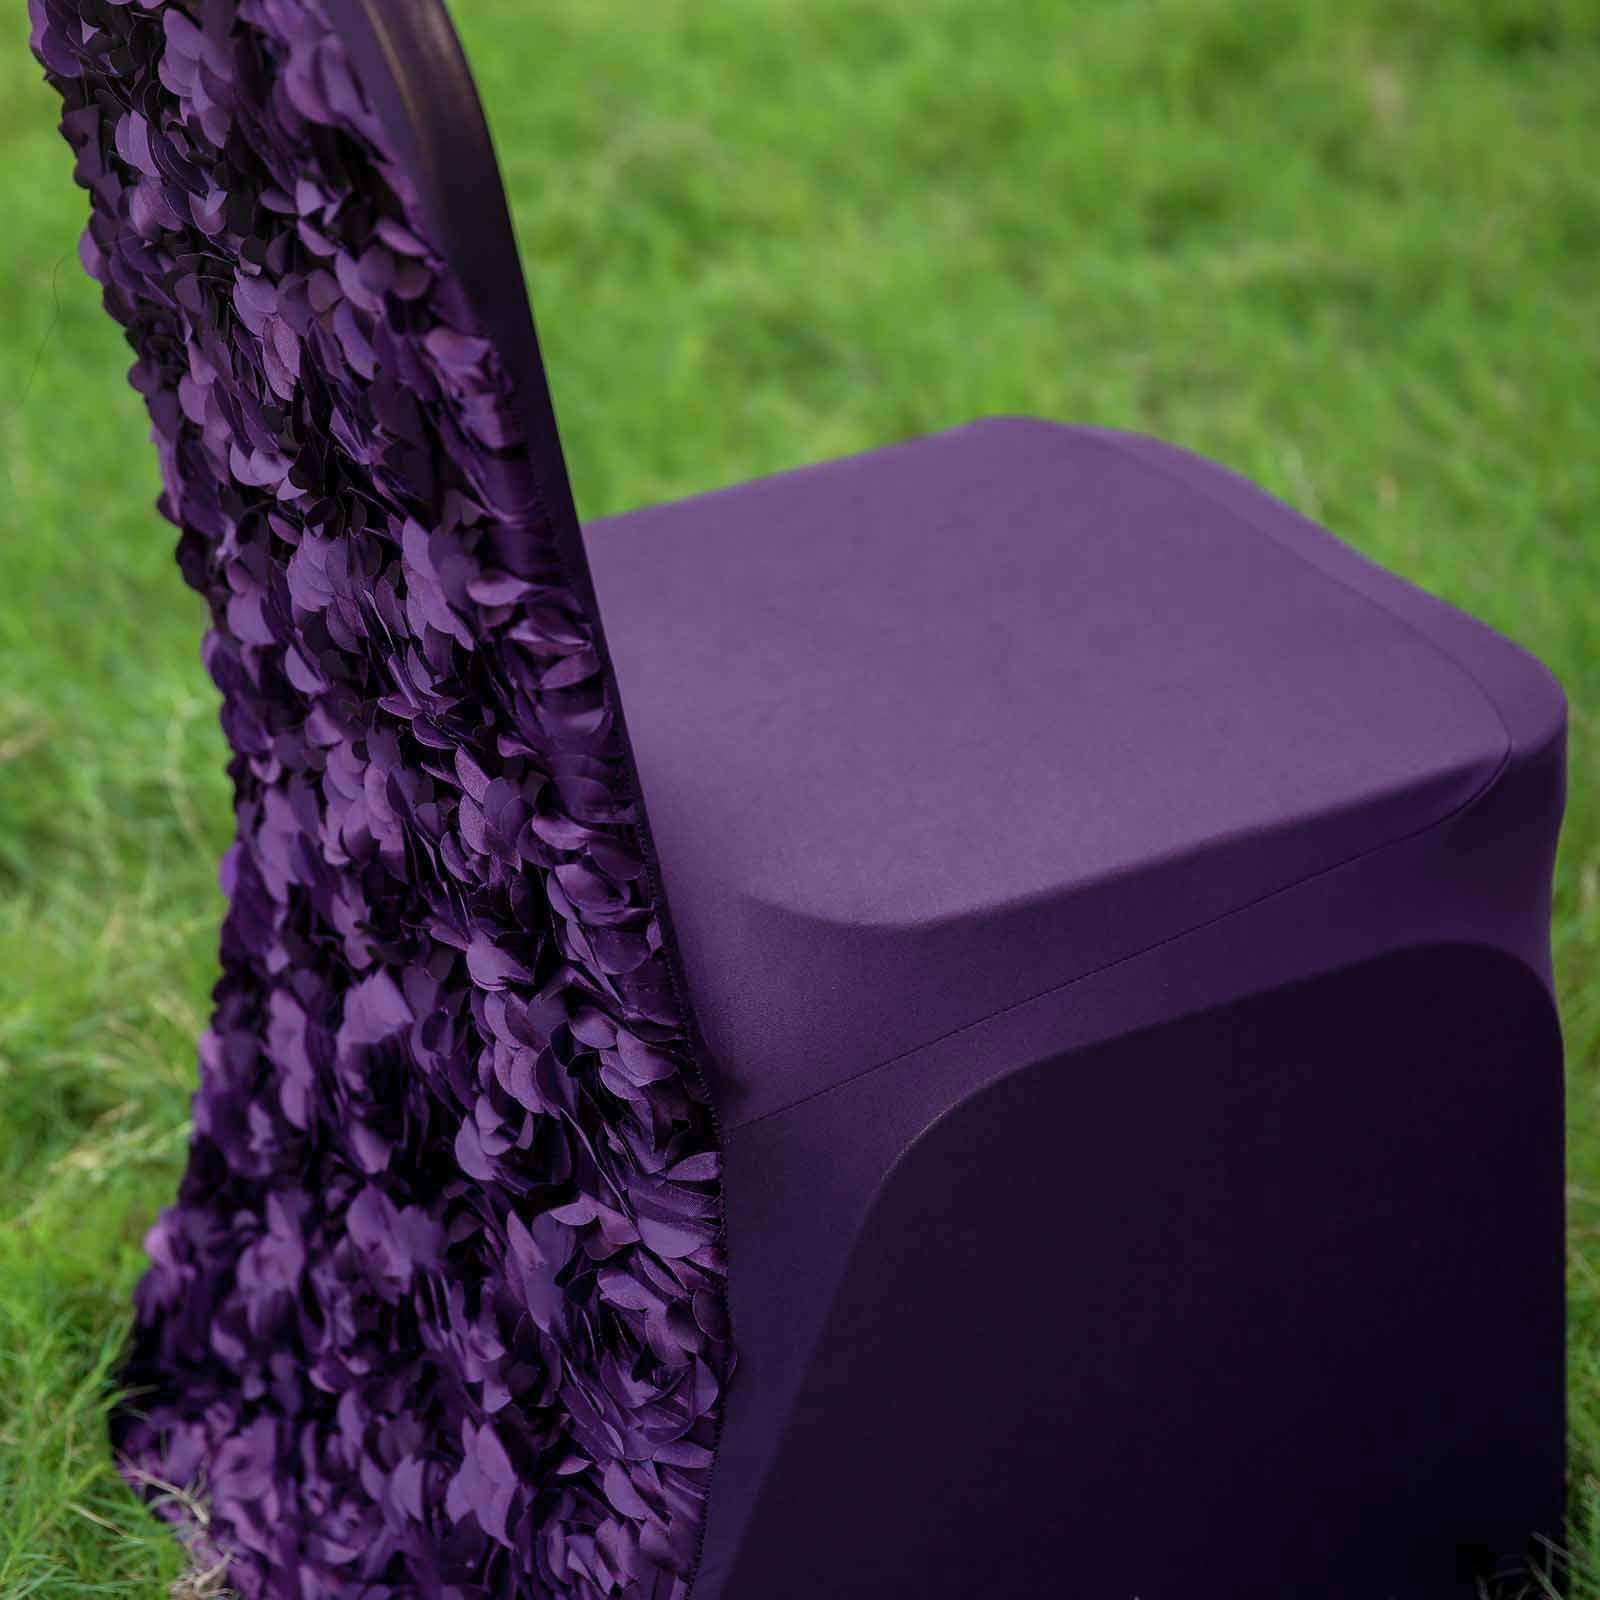 Stupendous Satin Rosette Eggplant Stretch Banquet Spandex Chair Cover Machost Co Dining Chair Design Ideas Machostcouk